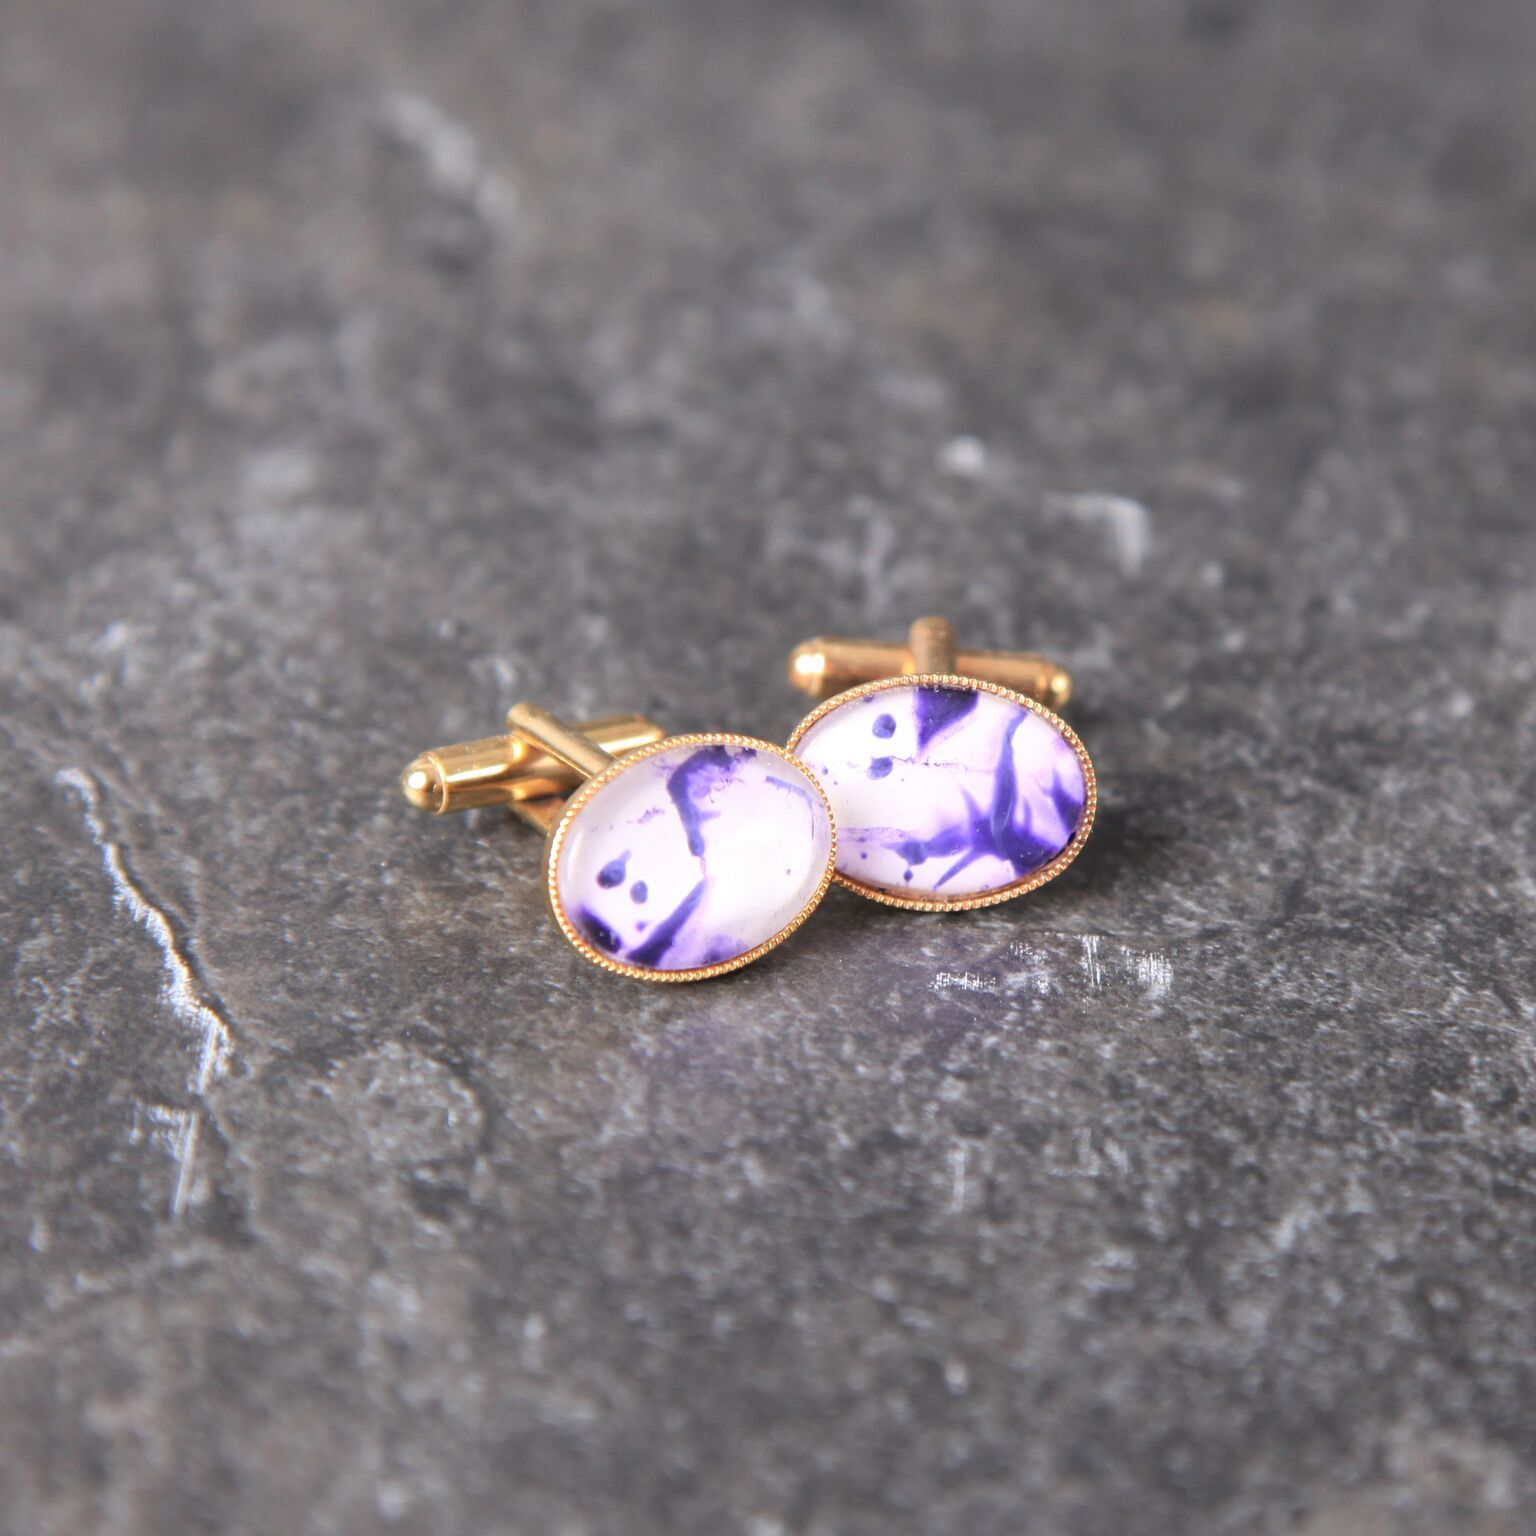 Unique Handmade Purple marble effect gold plated cuff links